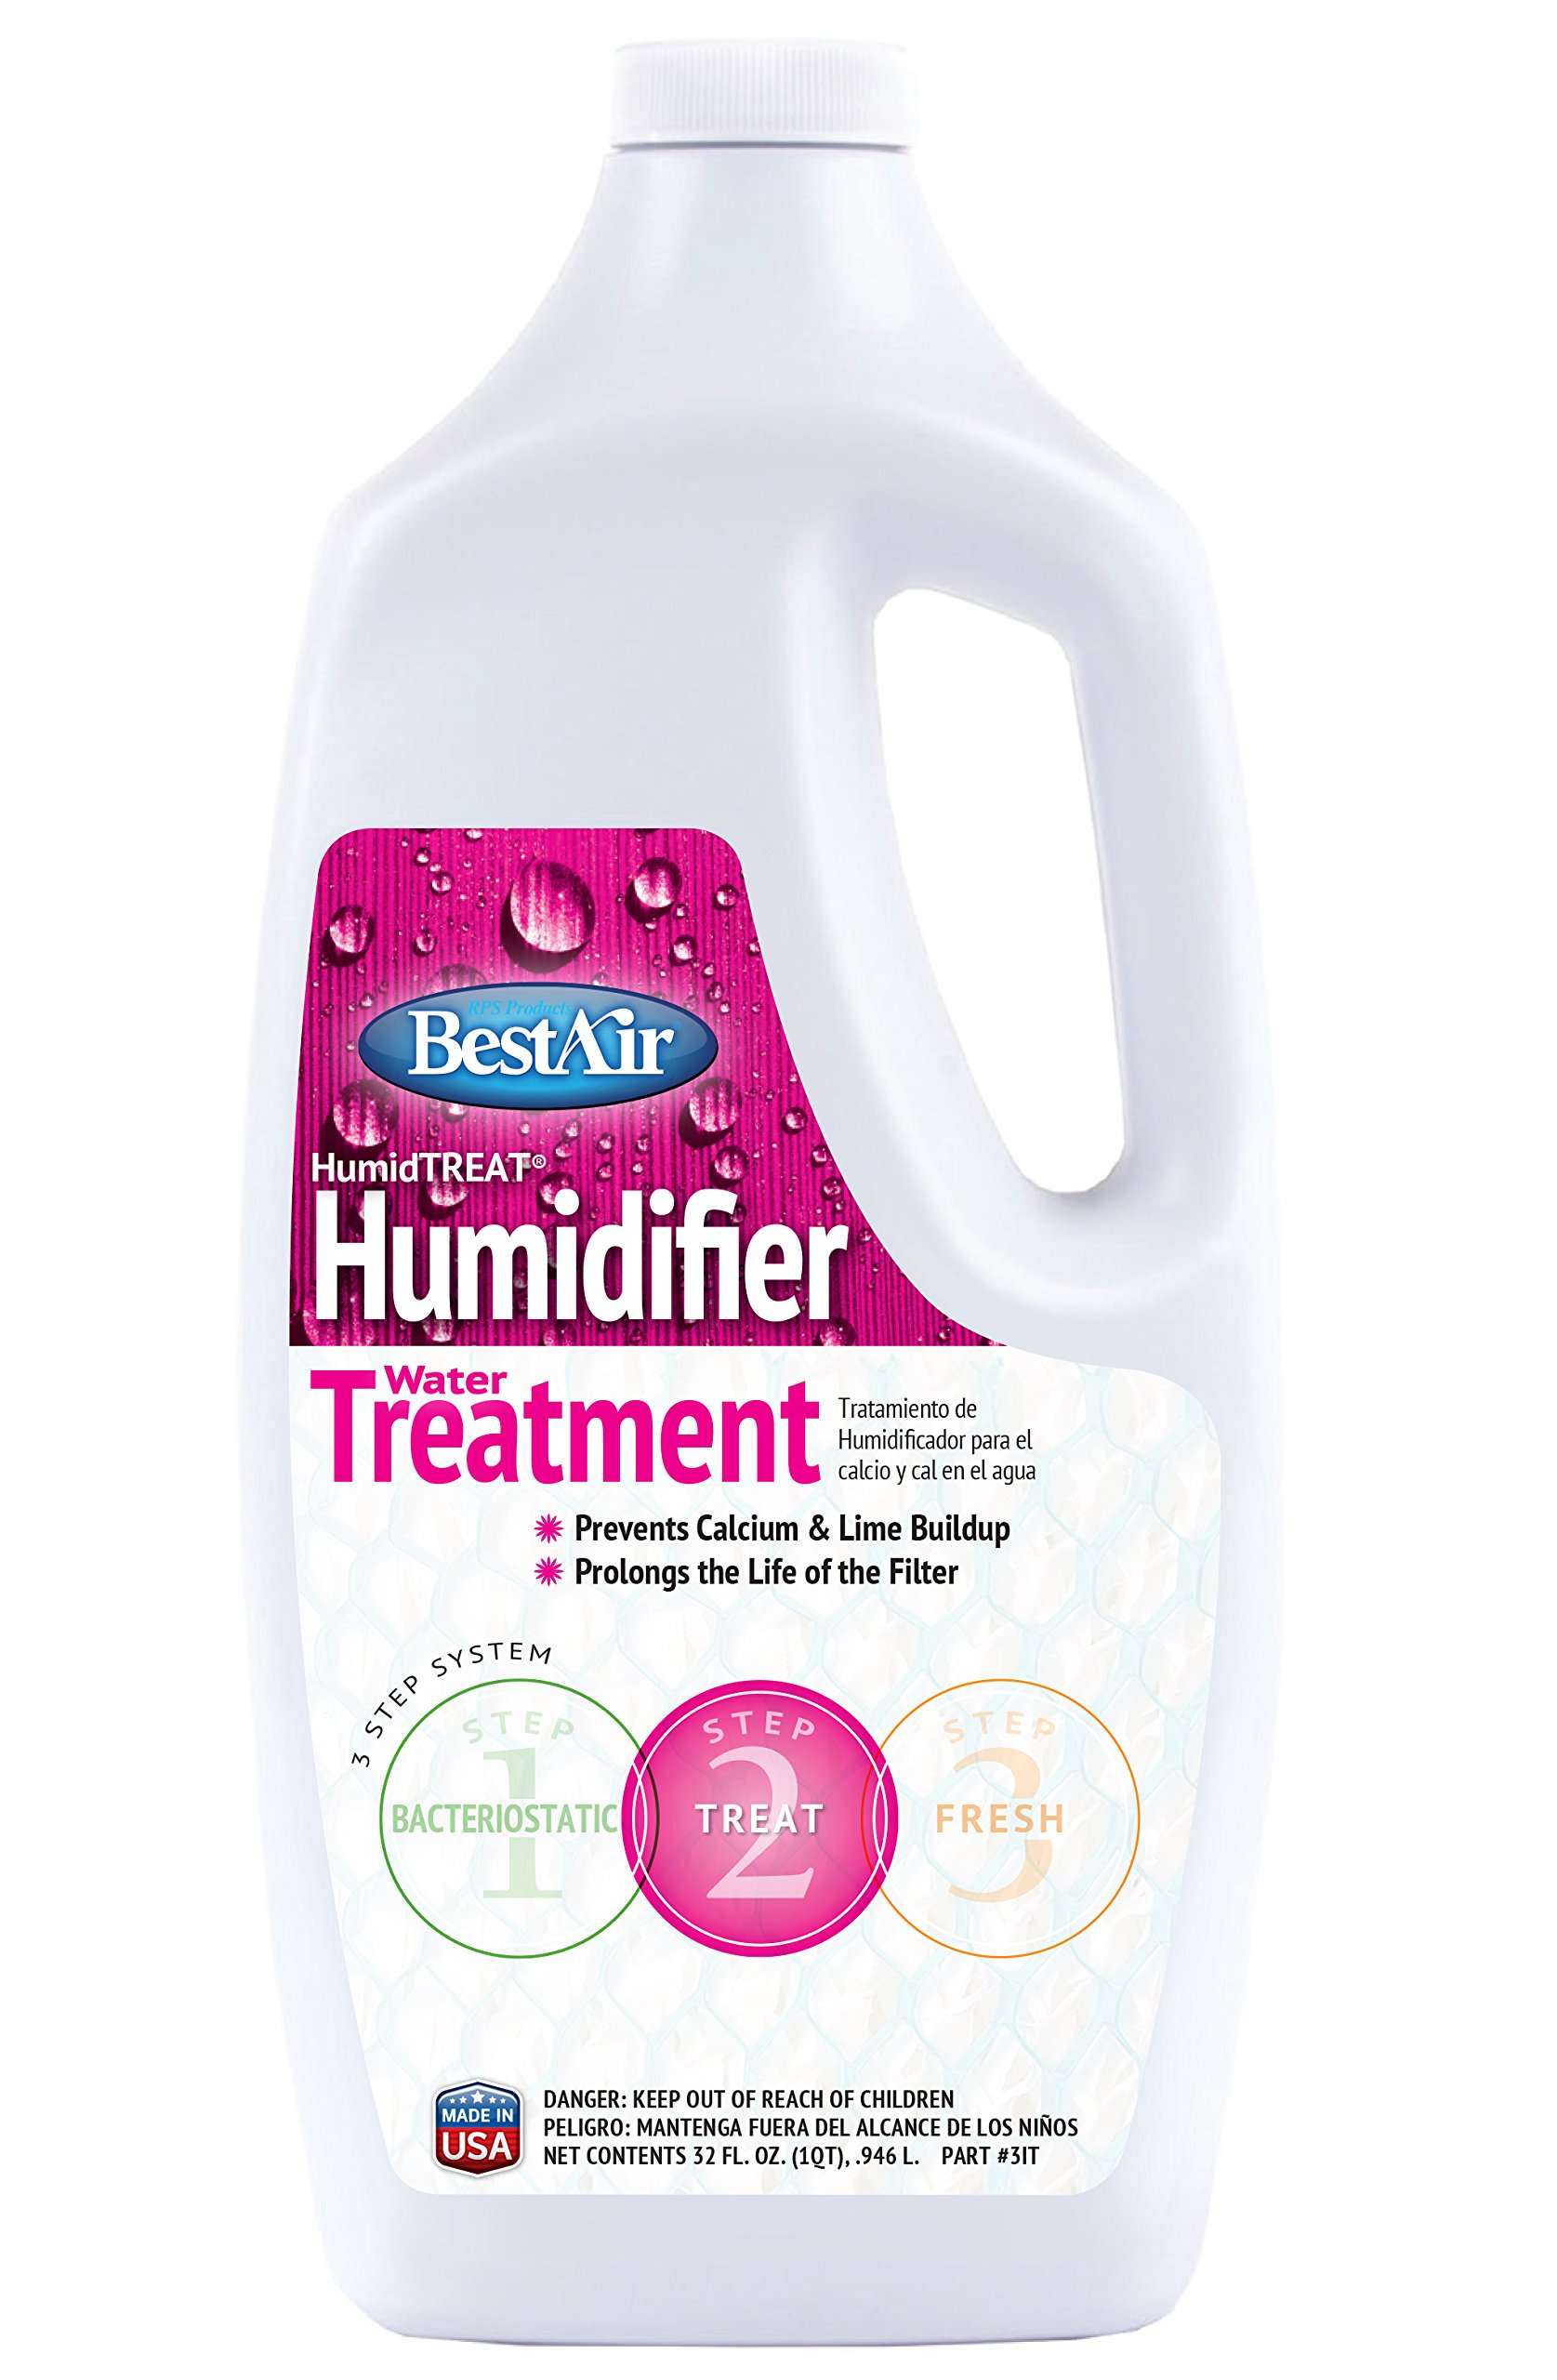 BestAir 1T, Humiditreat Extra Strength Humidifier Water Treatment, 32 oz, 6 pack